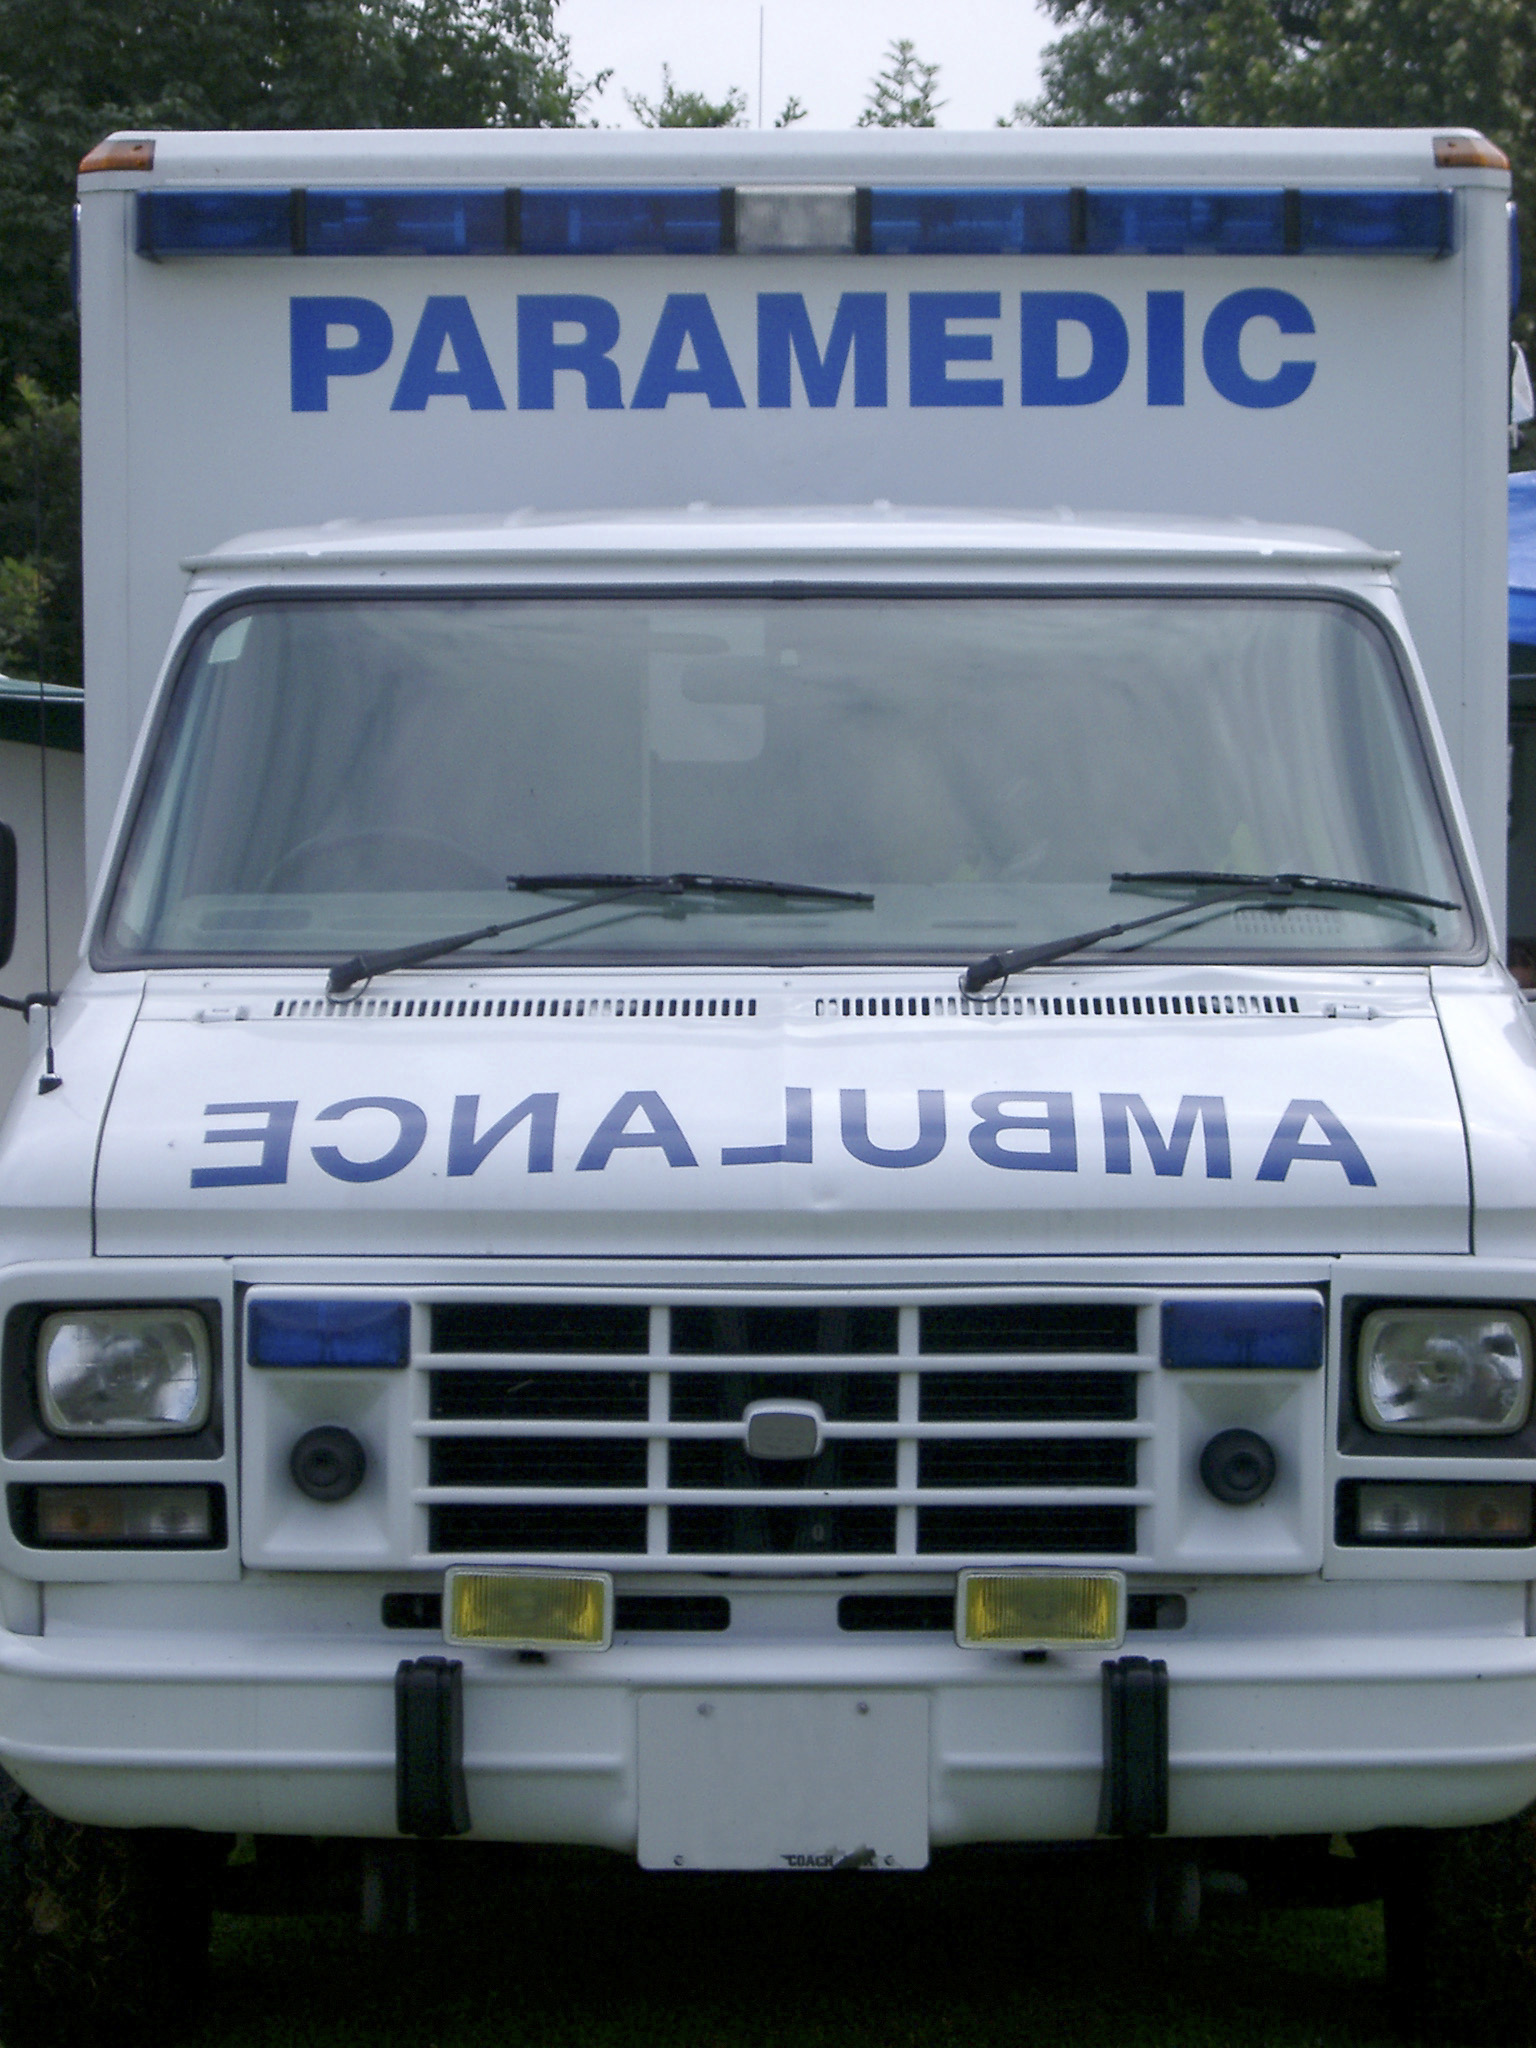 Front close up view of an ambulance with the signage - Ambulance and Paramedic